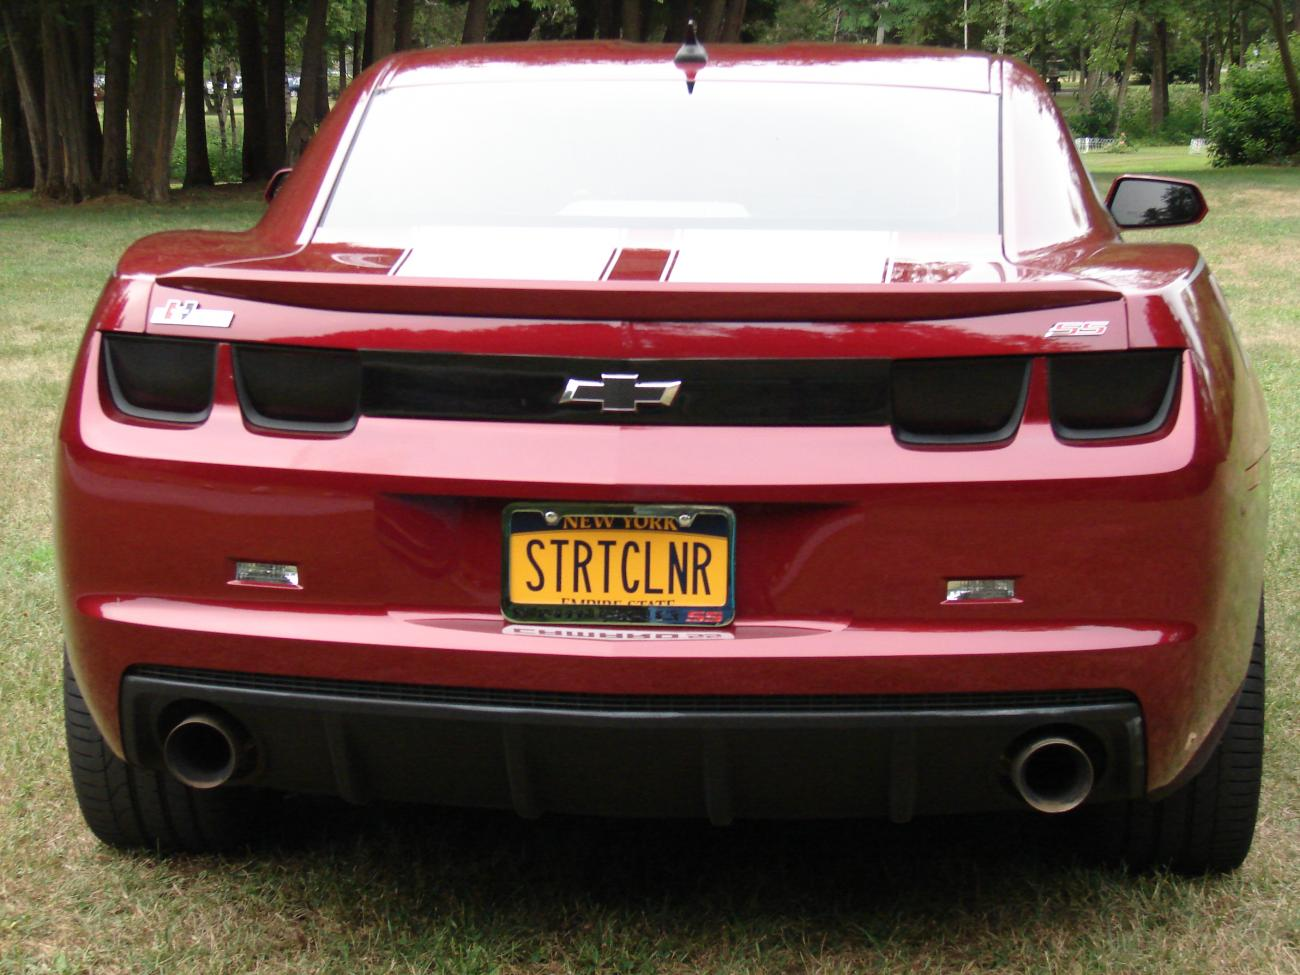 Vanity Plate Ideas For Miata The Coolest License Plates C5fiii Page 8  Camaro5